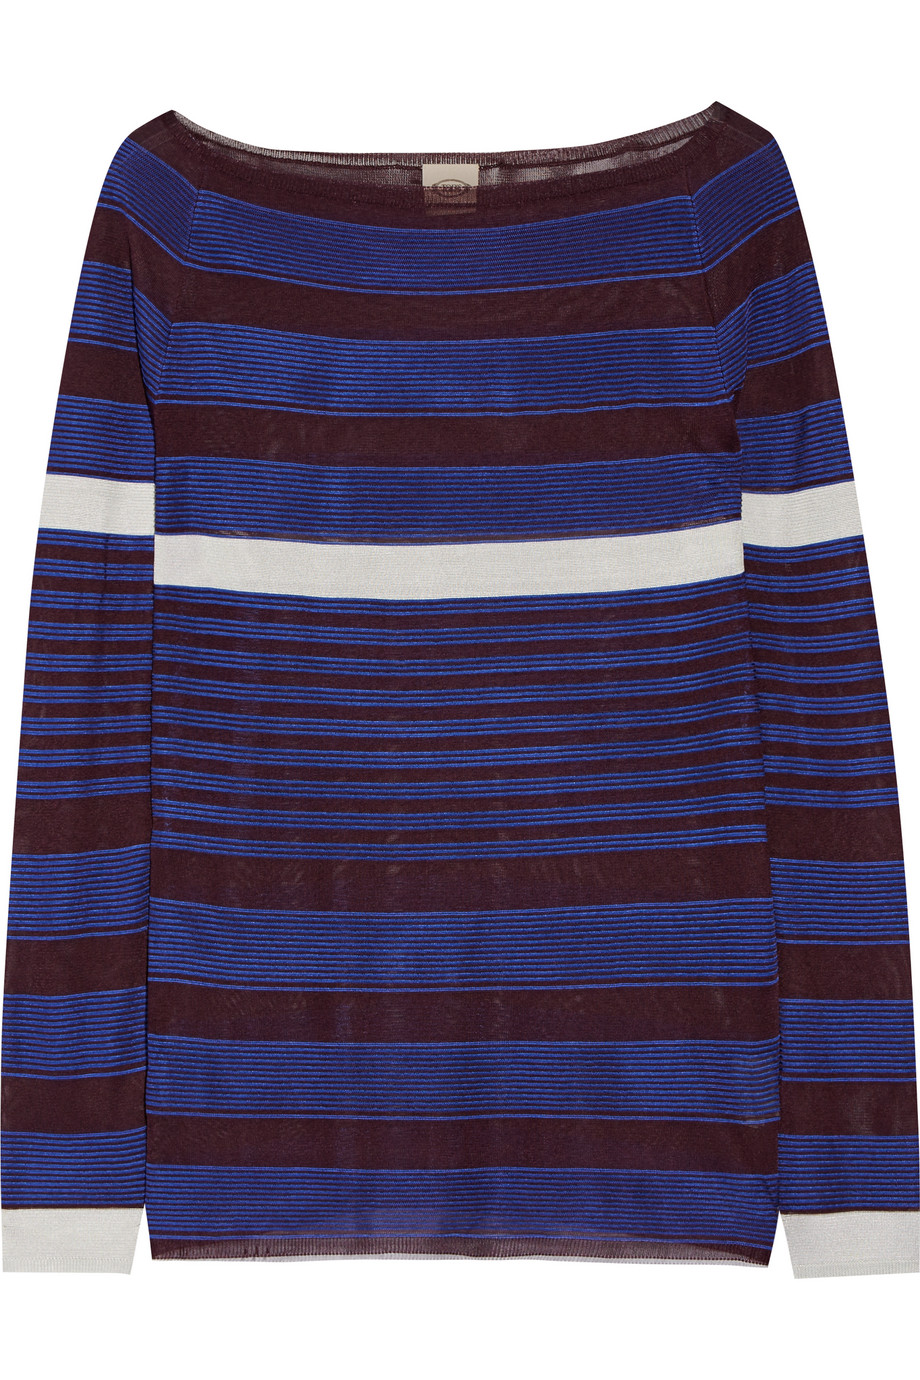 Tod's Striped Stretch-Knit Sweater, Cobalt Blue, Women's